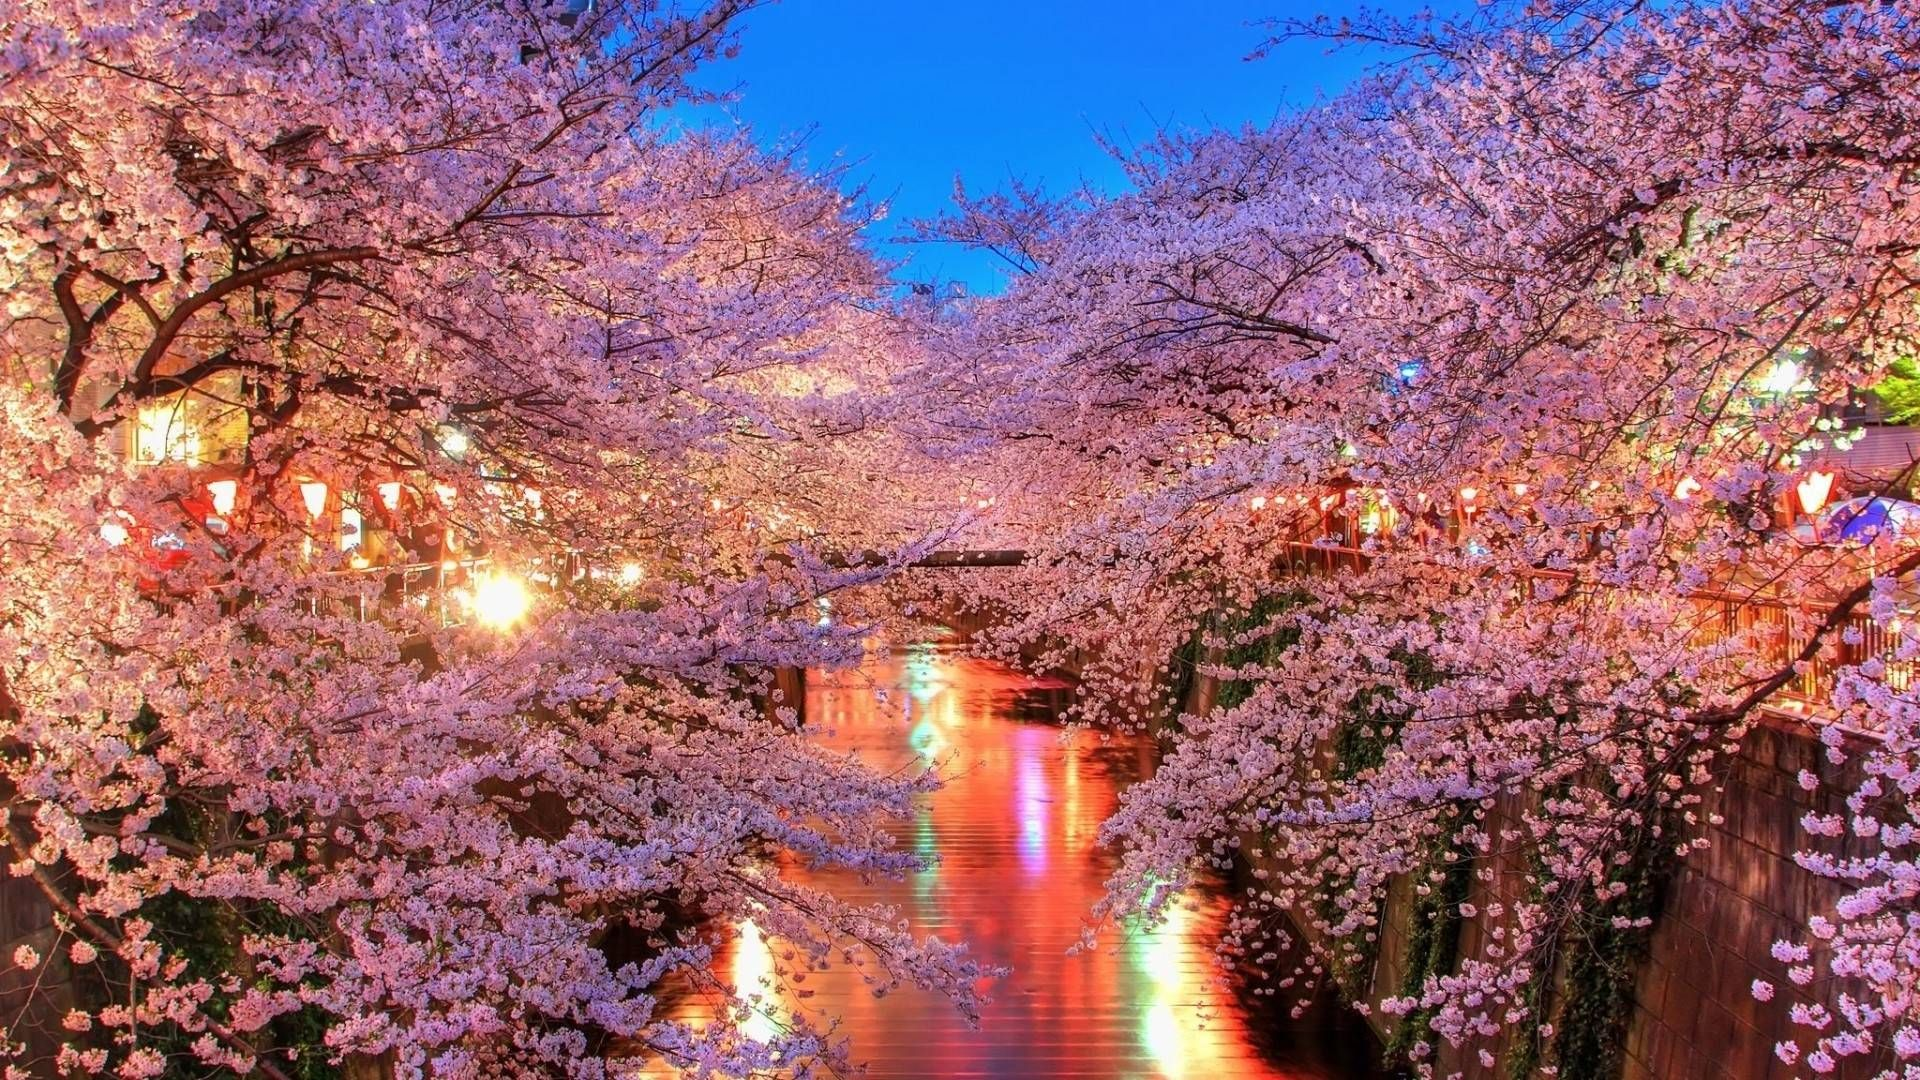 Right Now Is One Of My Favorite Times Of The Year And Here Is Why Cherry Blossom Wallpaper Cherry Blossom Background Cherry Blossom Japan